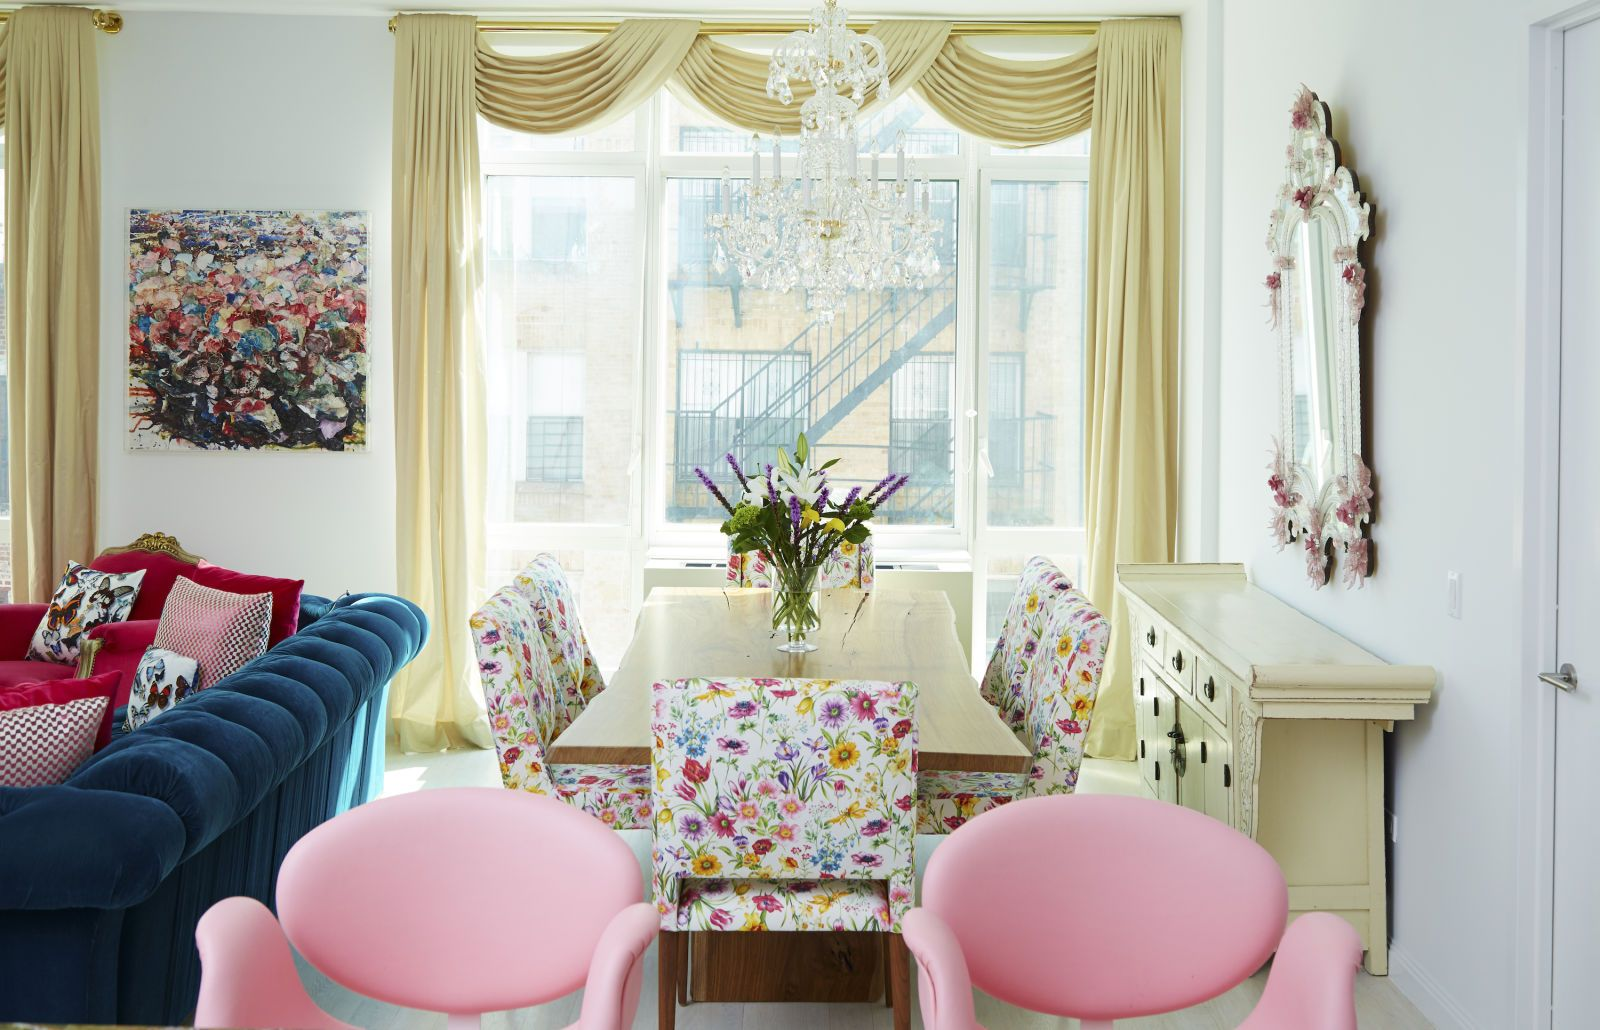 This Stunning Apartment Perfectly Blends Whimsical Colors With ...